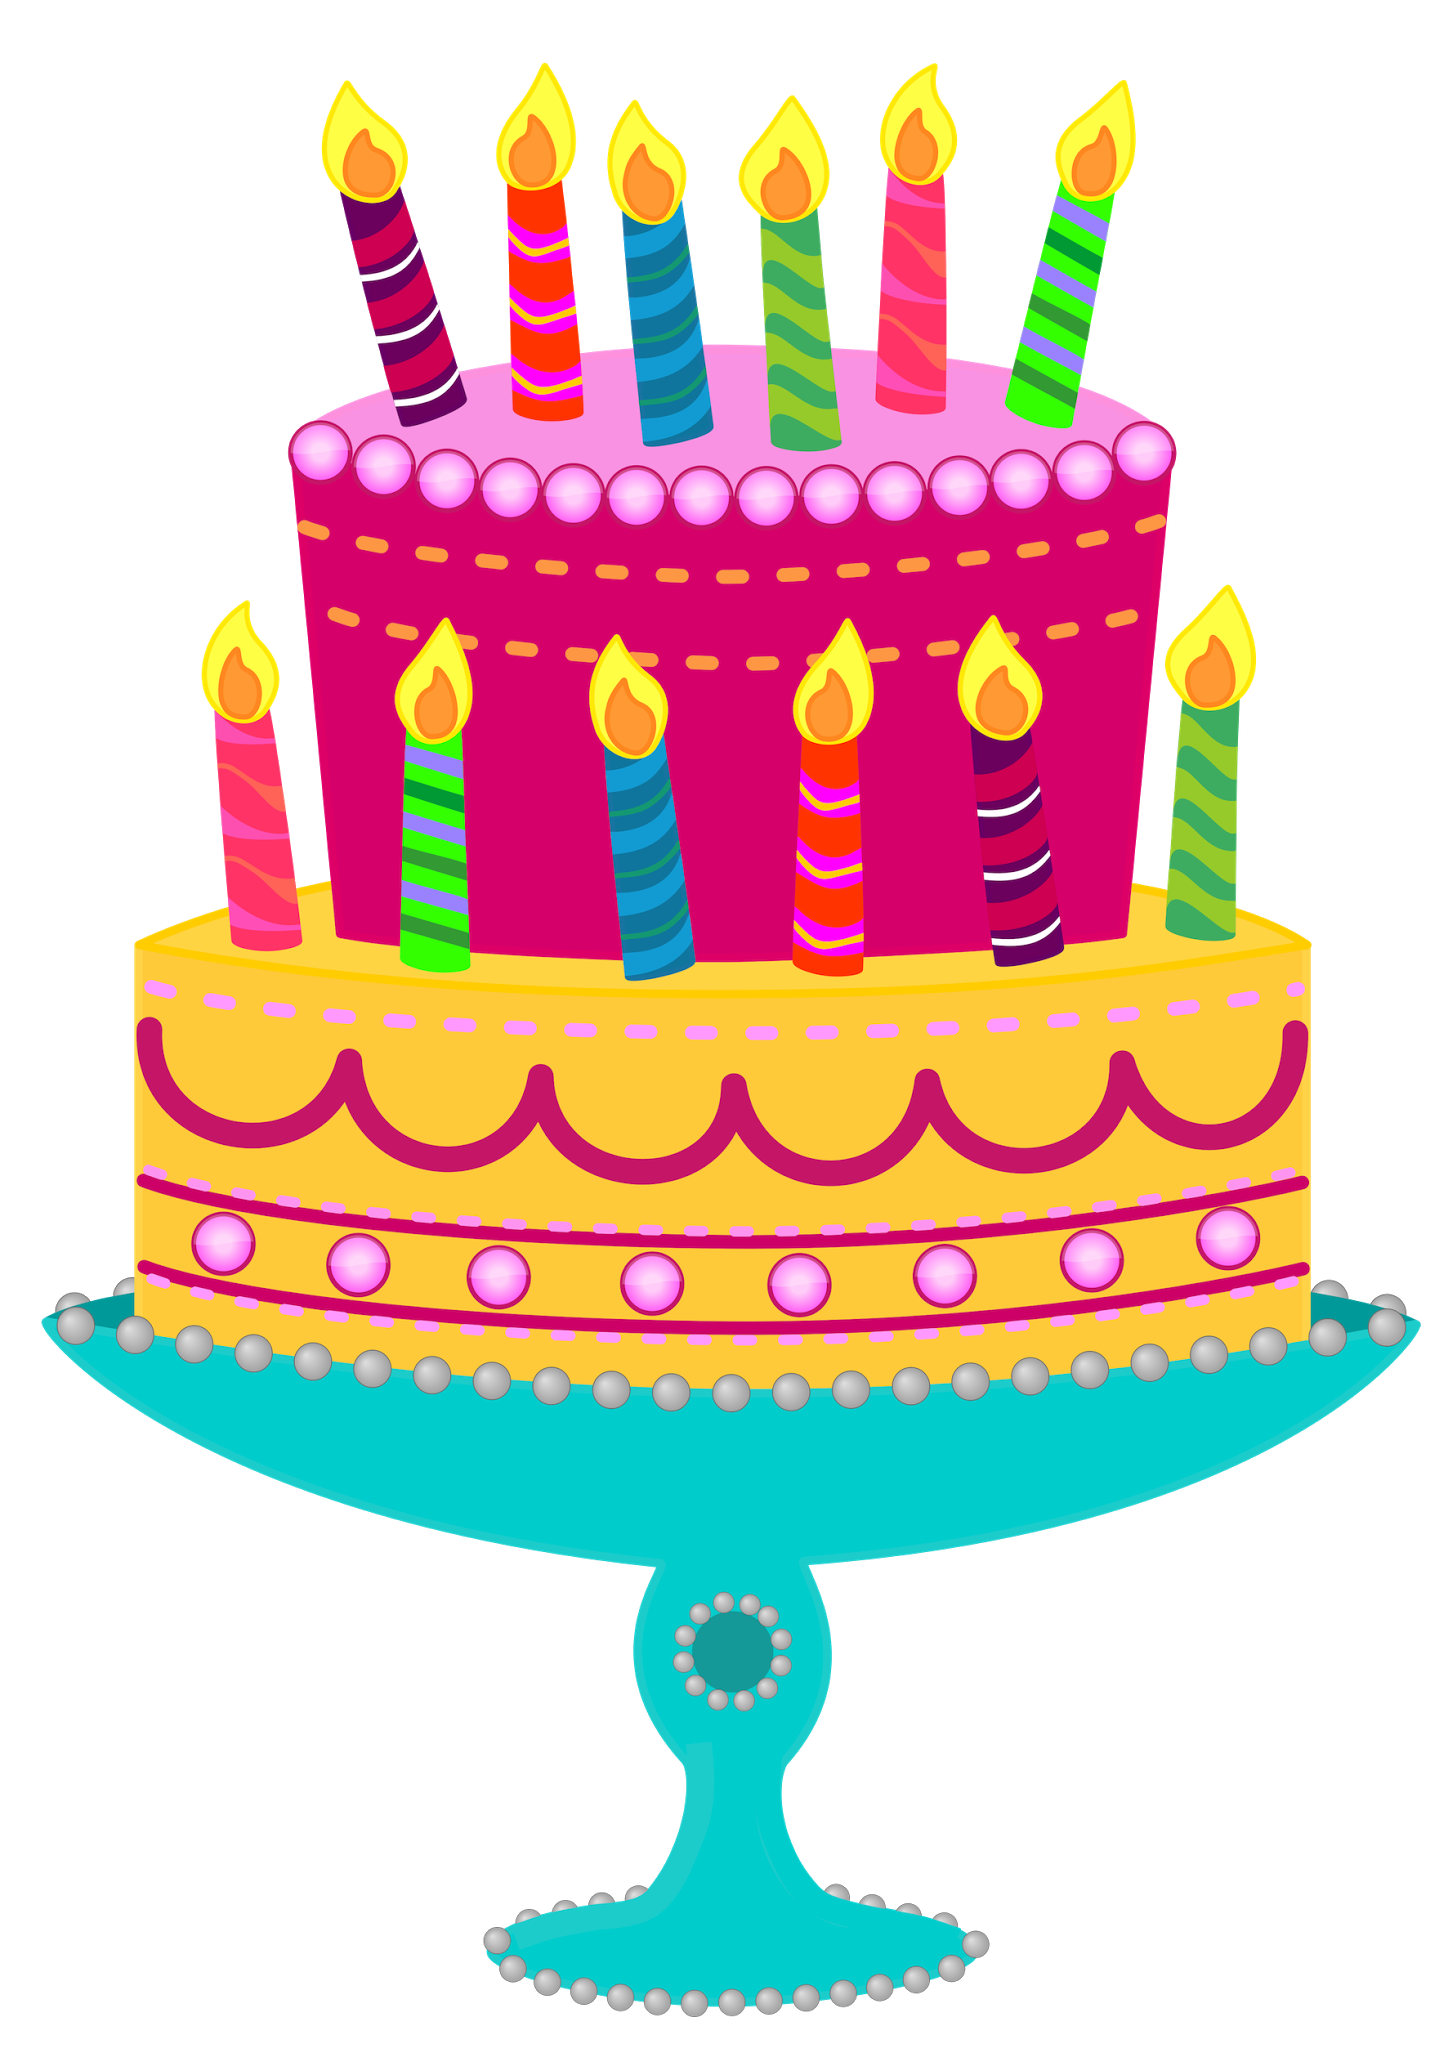 Clipart Real Birthday Cake : Free Birthday Cake Image - Cliparts.co